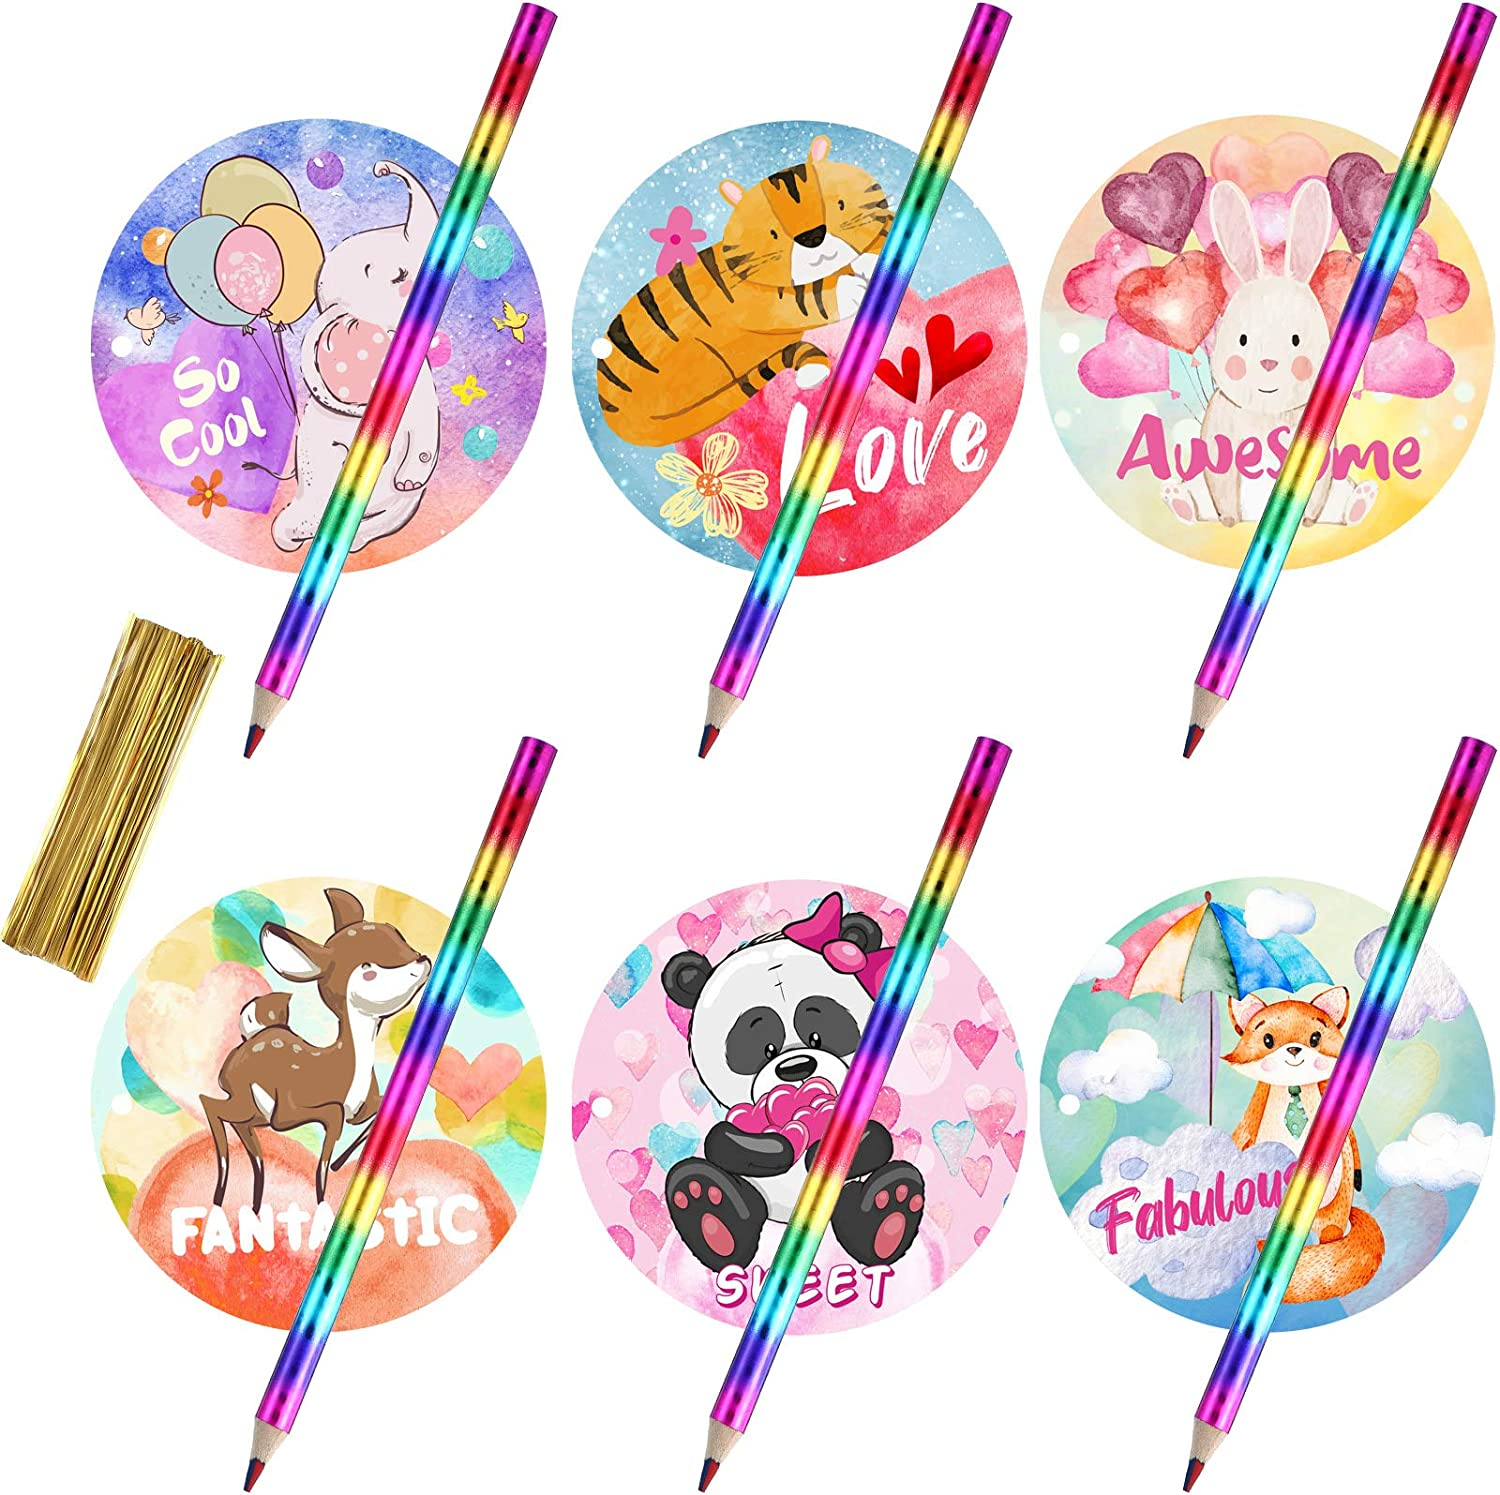 30 Set Valentine's Day Animal Cards with Rainbow Pencils for Kids, Animal Valentines Greeting Cards Animal Holiday Exchange Card Valentine Party Favor Toy, Valentines Classroom Exchange Party Supplies